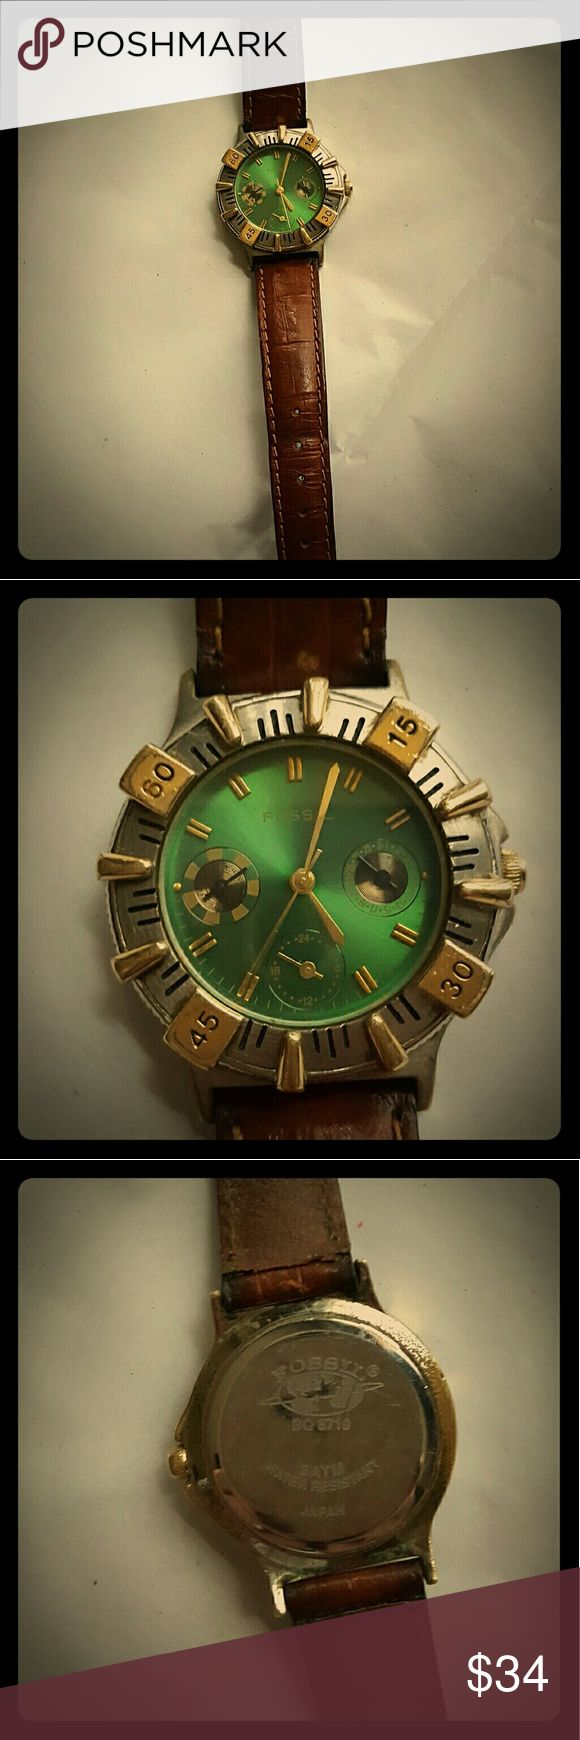 Fossil watch green and gold. This is a vintage Fossil watch with a green face and brown leather band. Fossil Accessories Watches